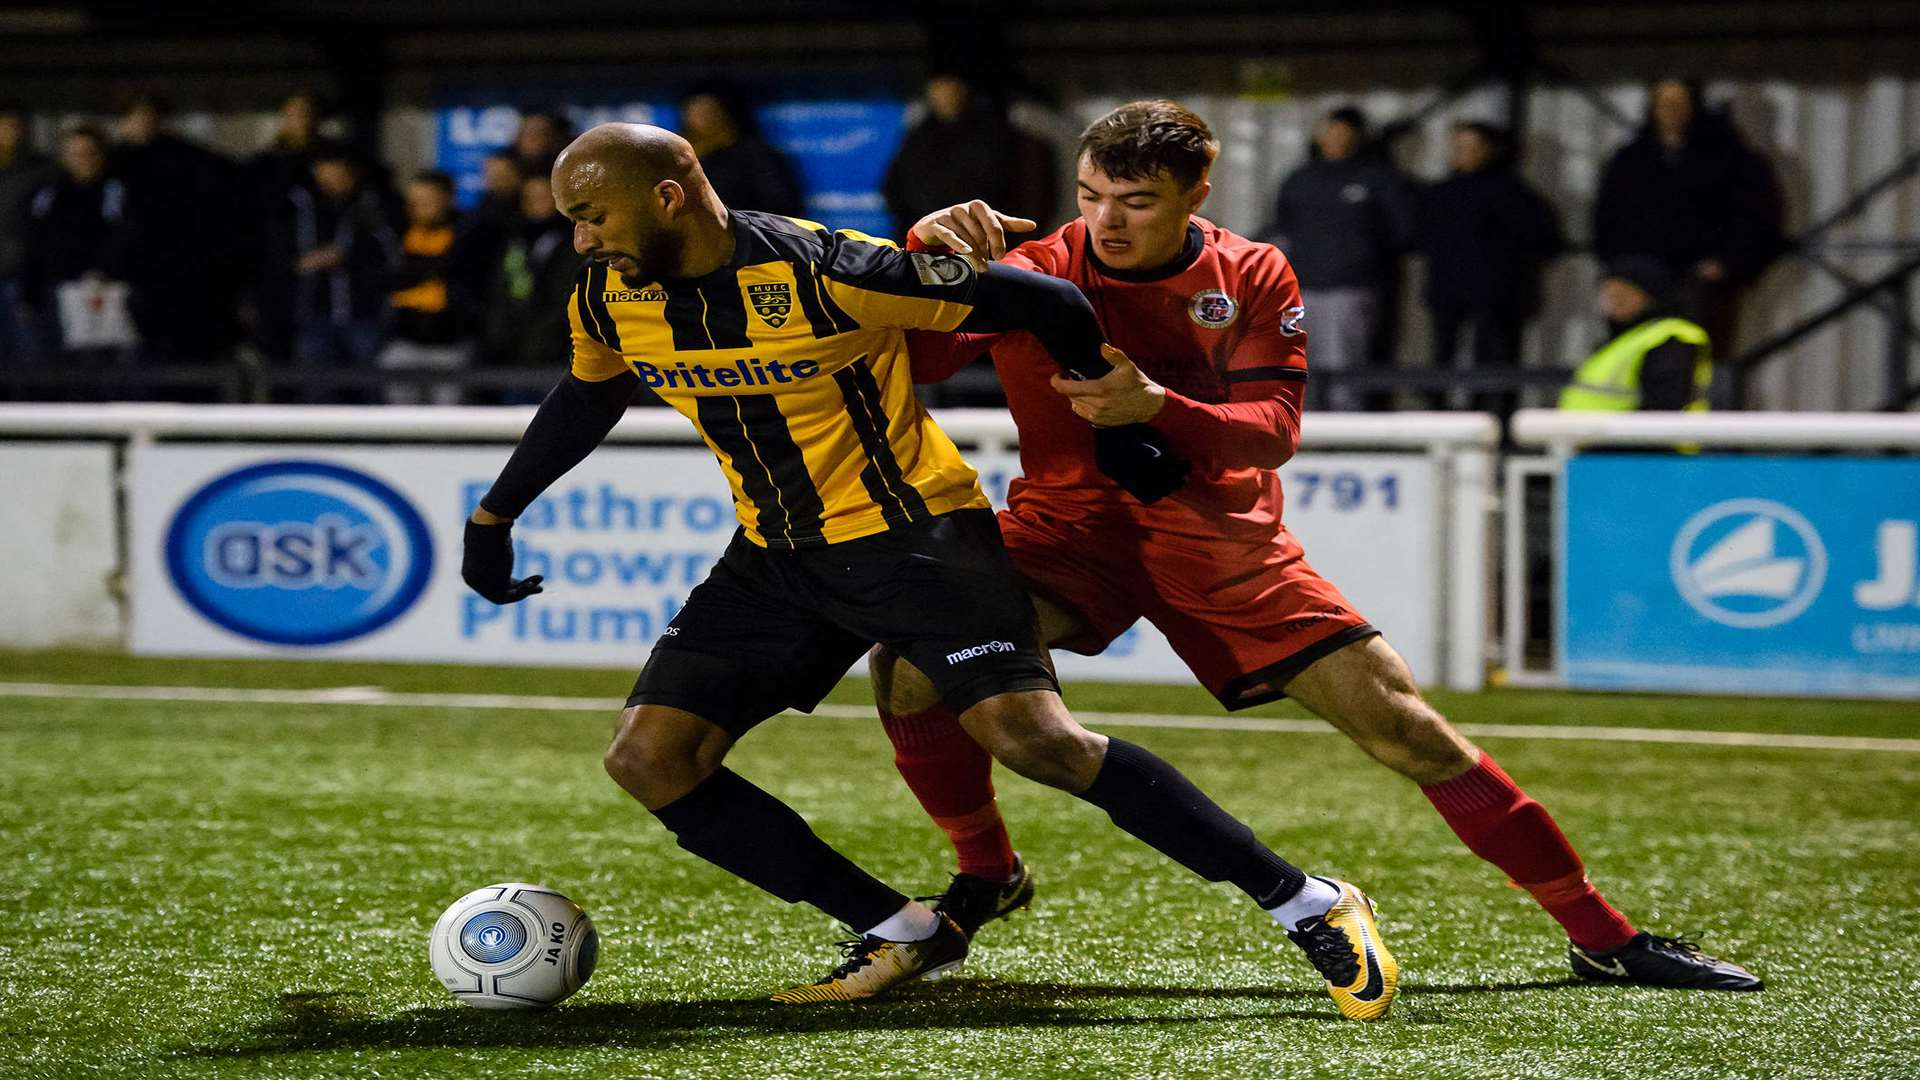 Delano Sam-Yorke on the ball for Maidstone Picture: Andy Payton